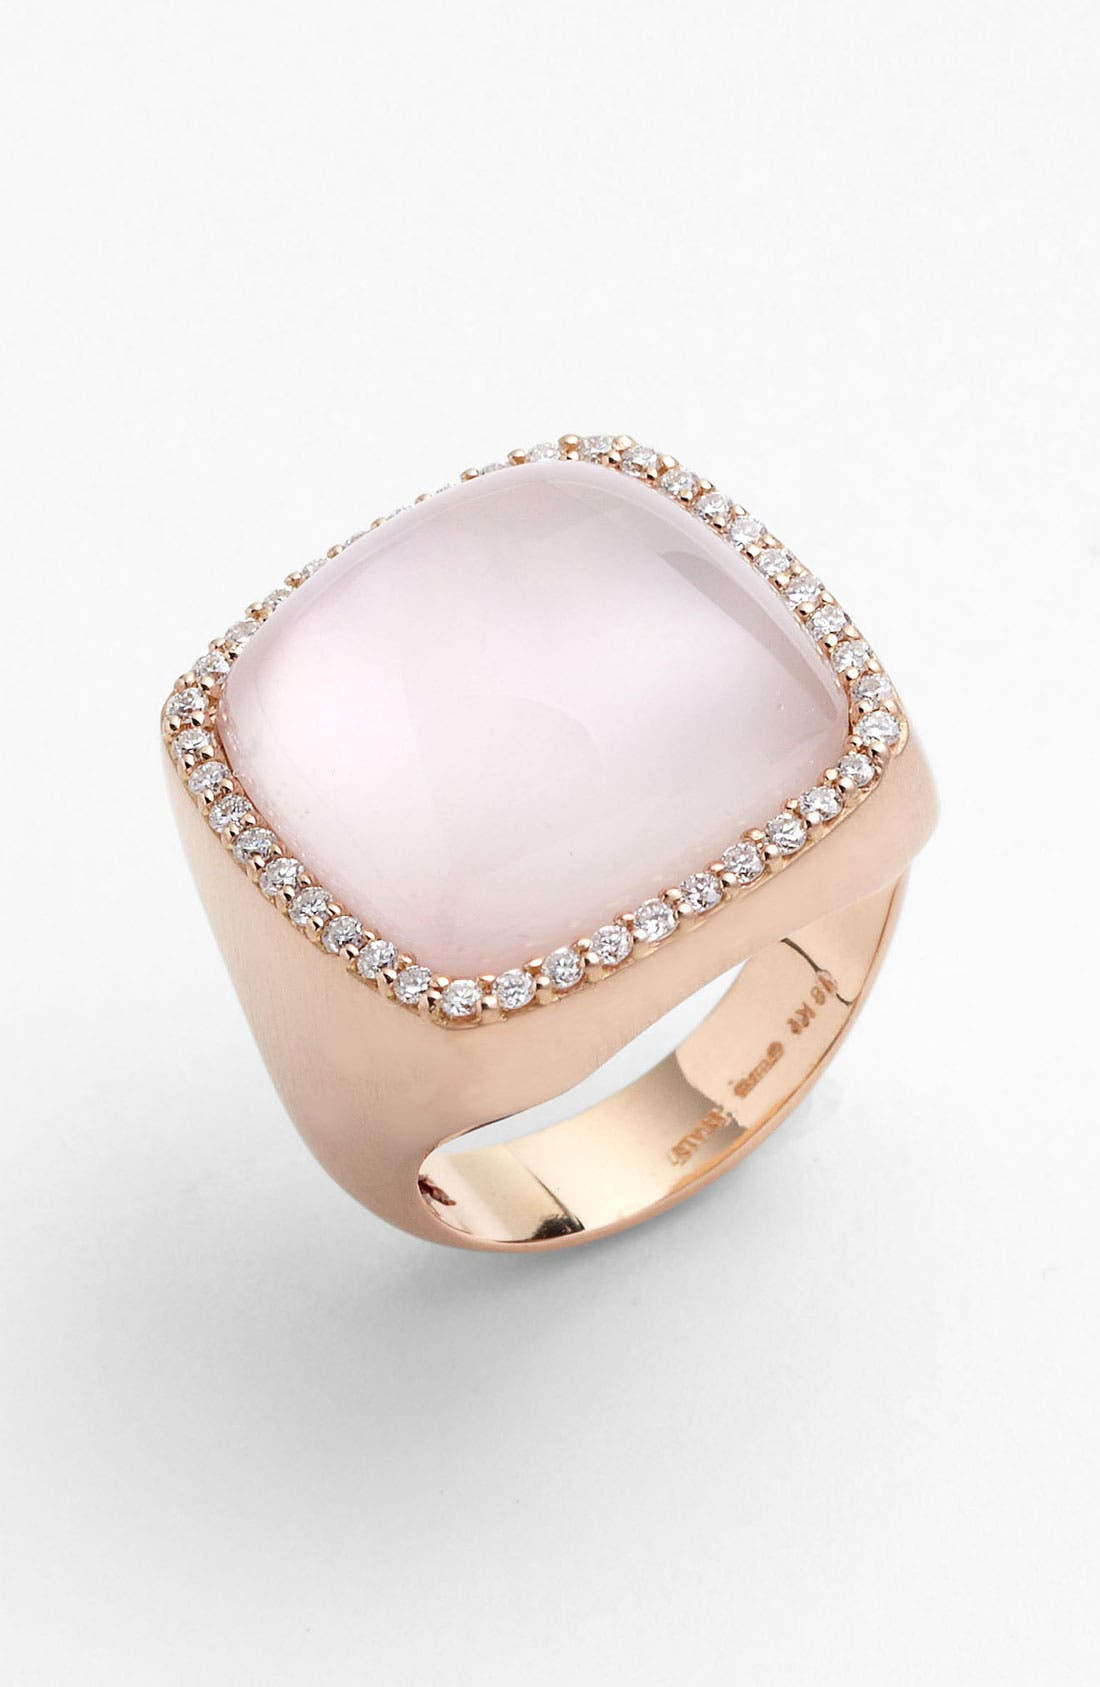 Main Image - Roberto Coin Diamond & Square Cut Rose Quartz Ring